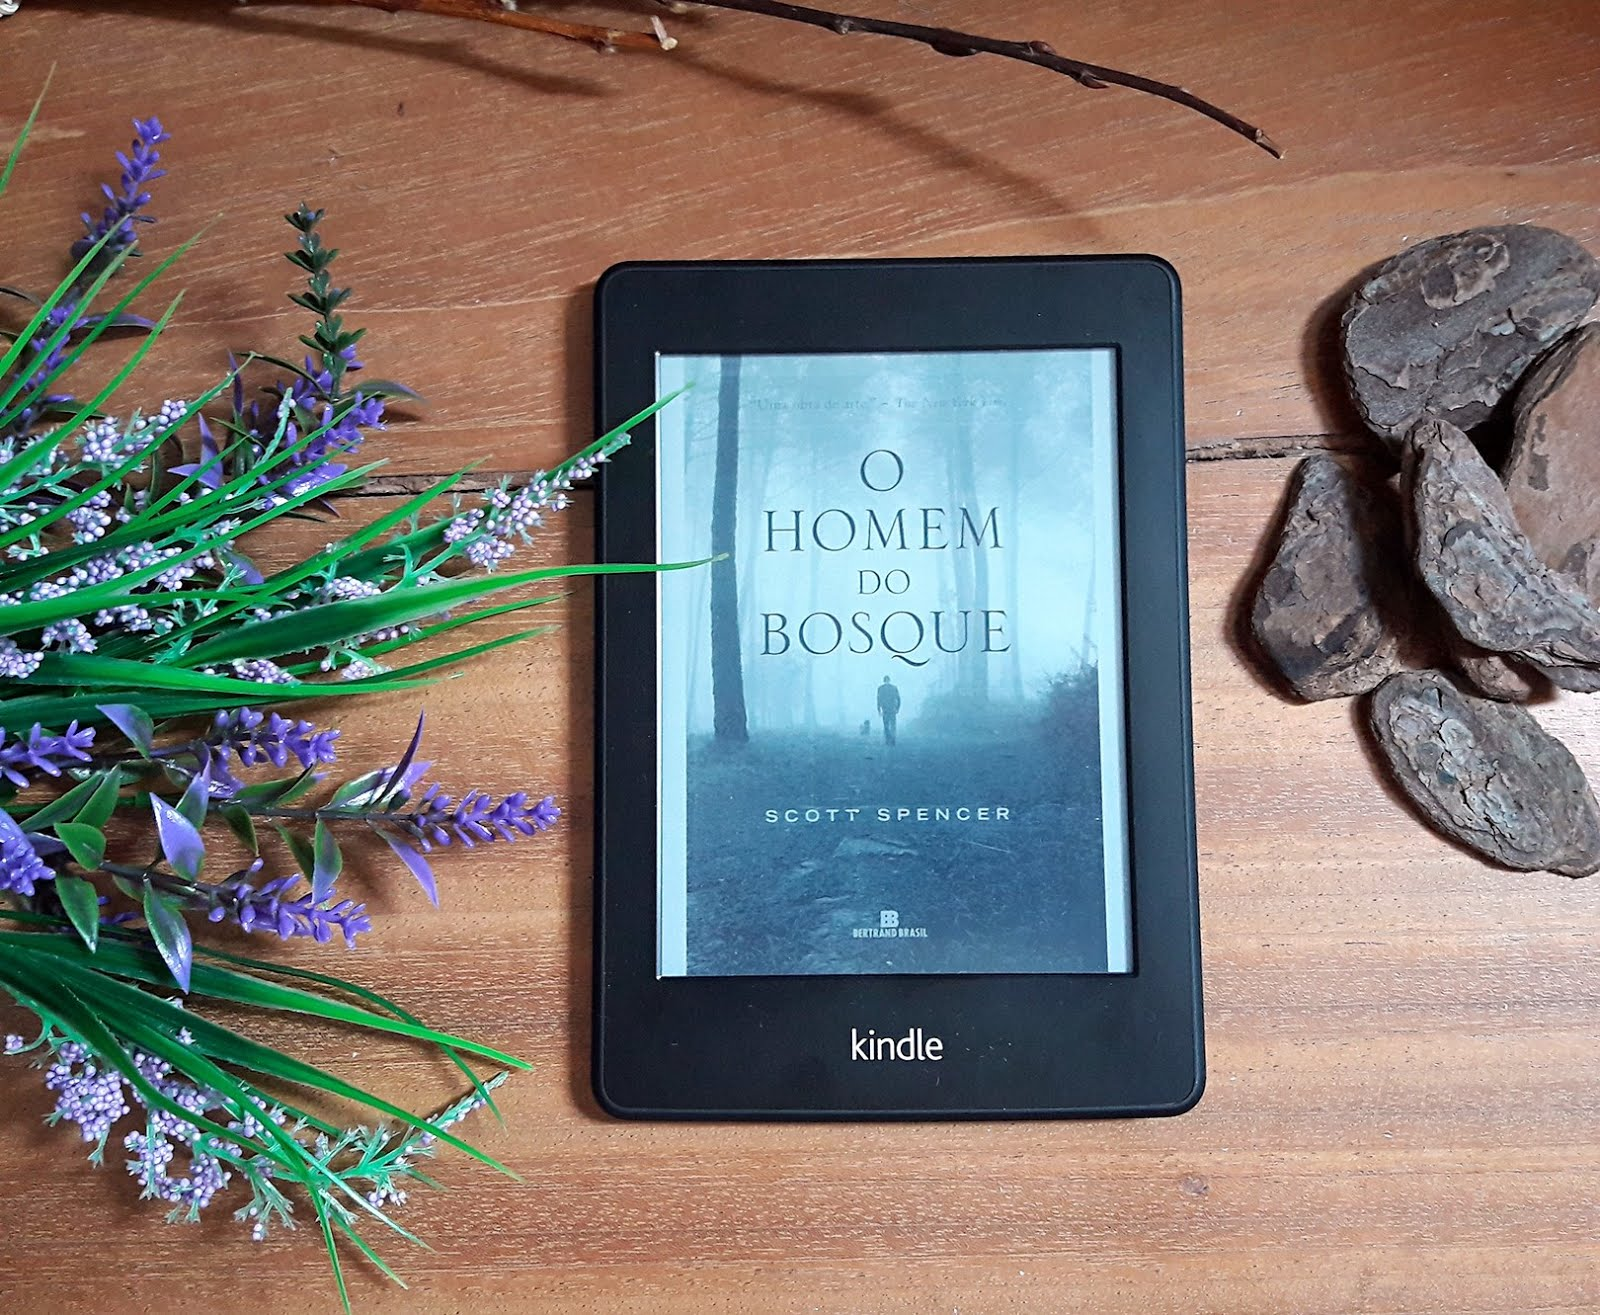 Foto do kindle com o ebook O Homem do Bosque